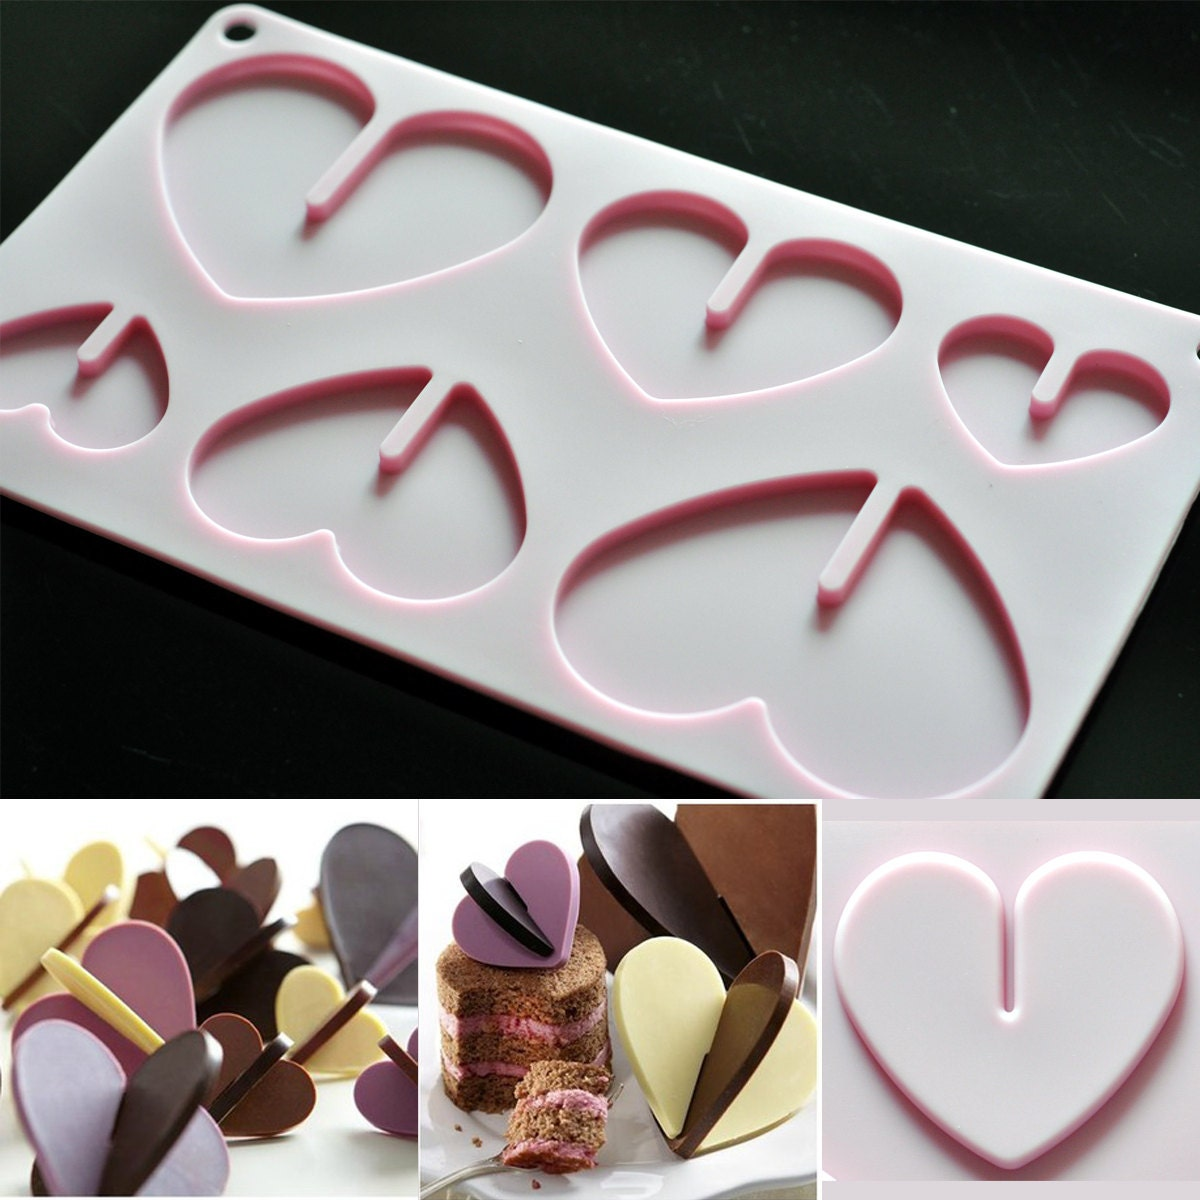 Custom Moulds For Chocolate Making